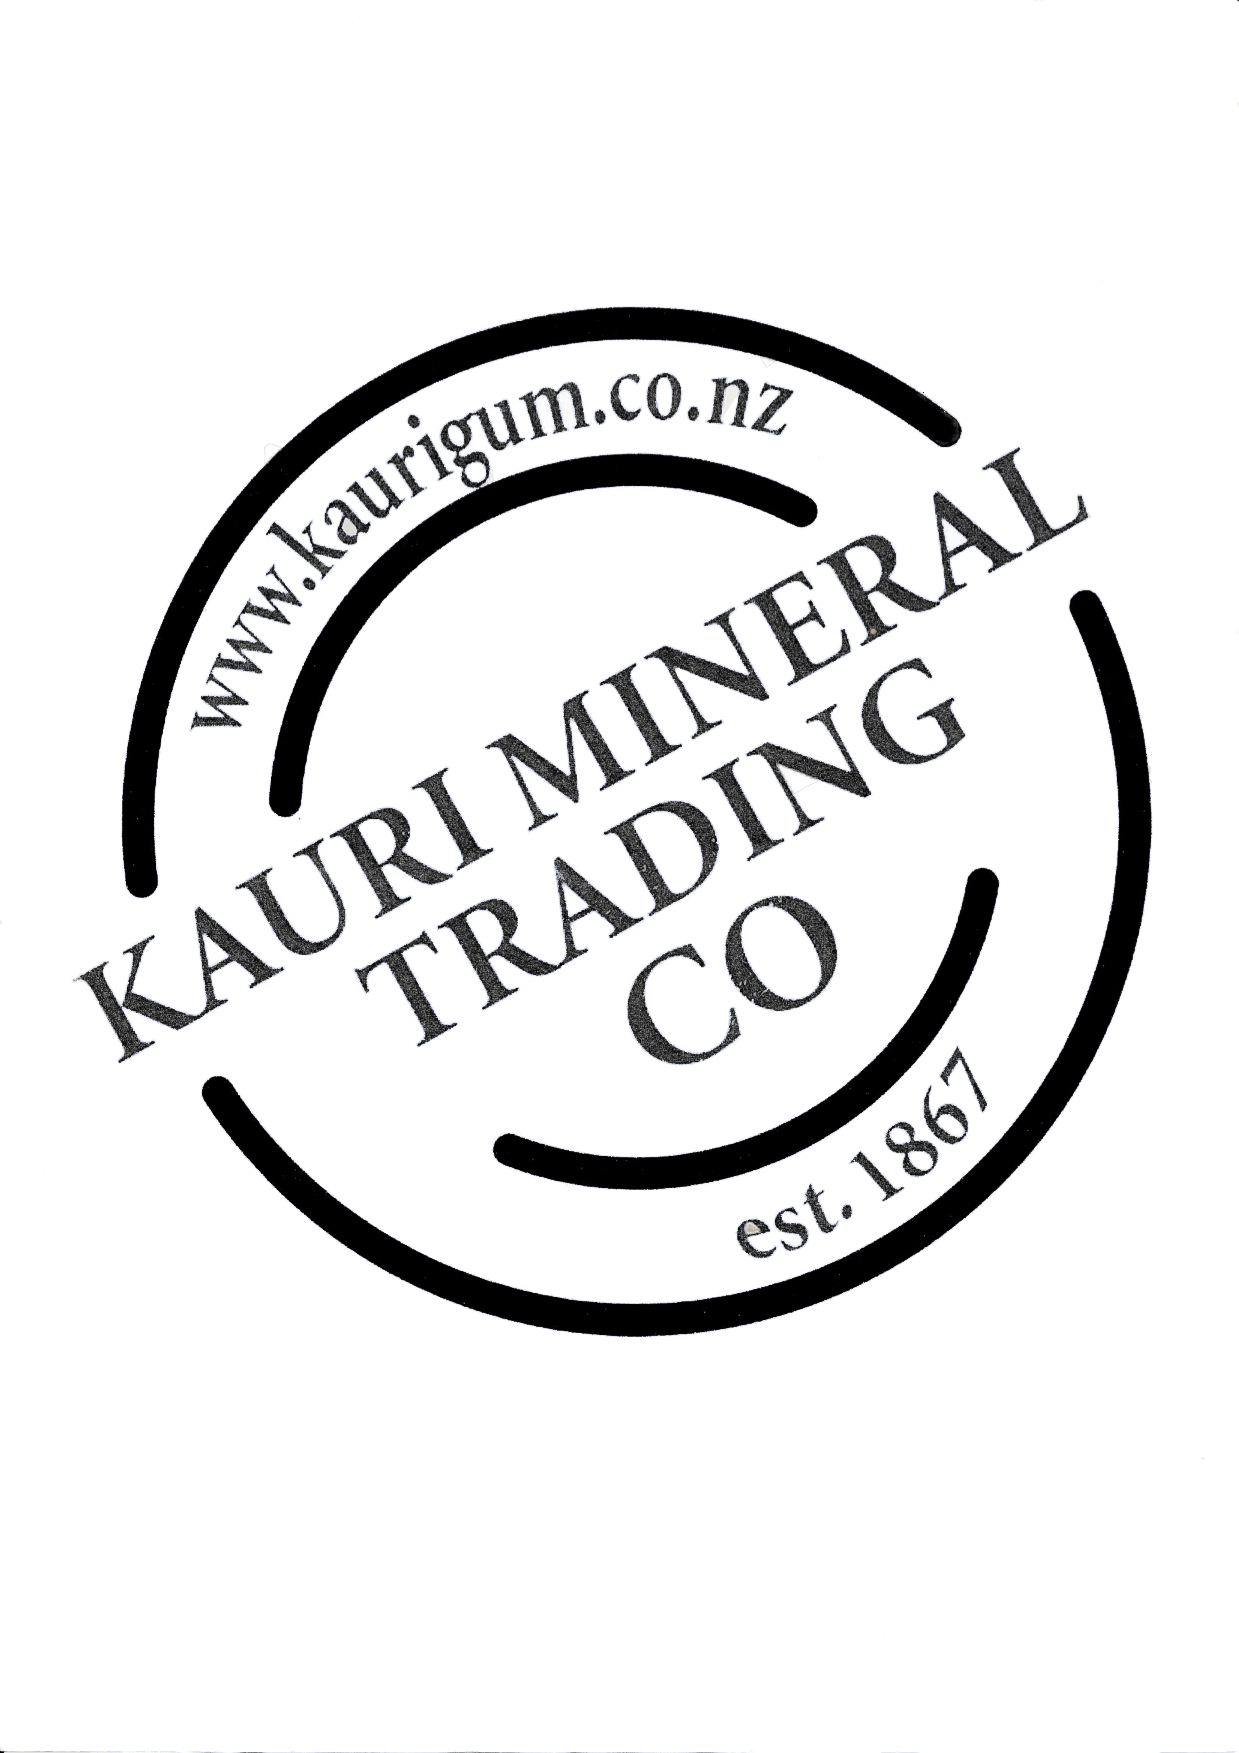 Kauri Mineral Trading Co